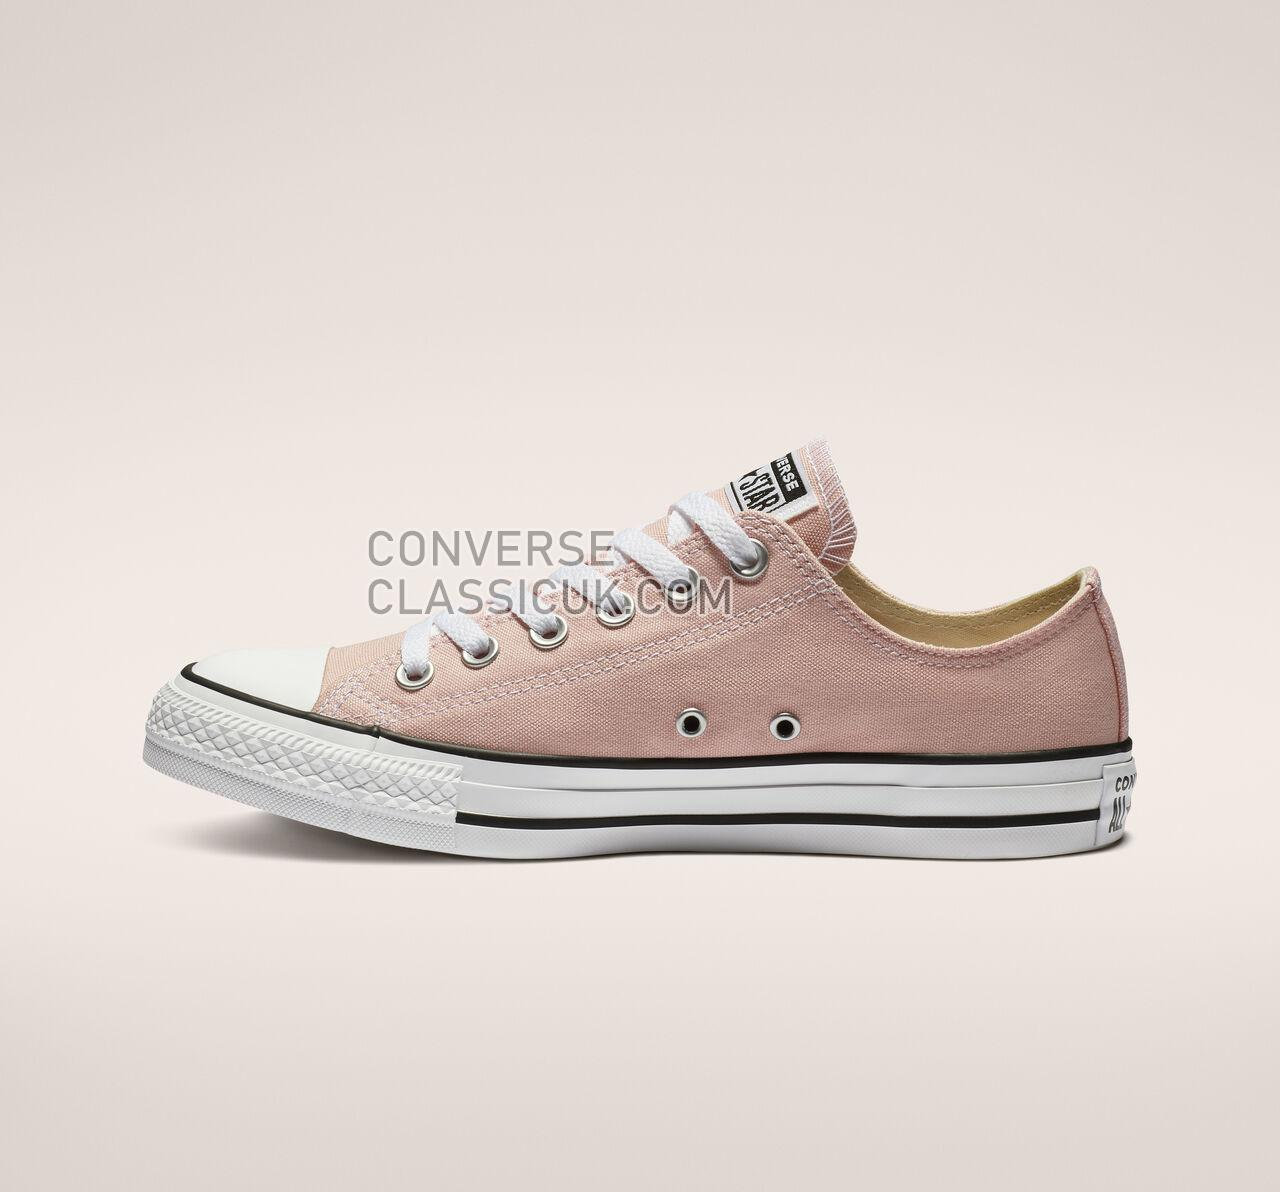 Converse Chuck Taylor All Star Seasonal Color Low Top Mens Womens Unisex 162115F Storm Pink Shoes